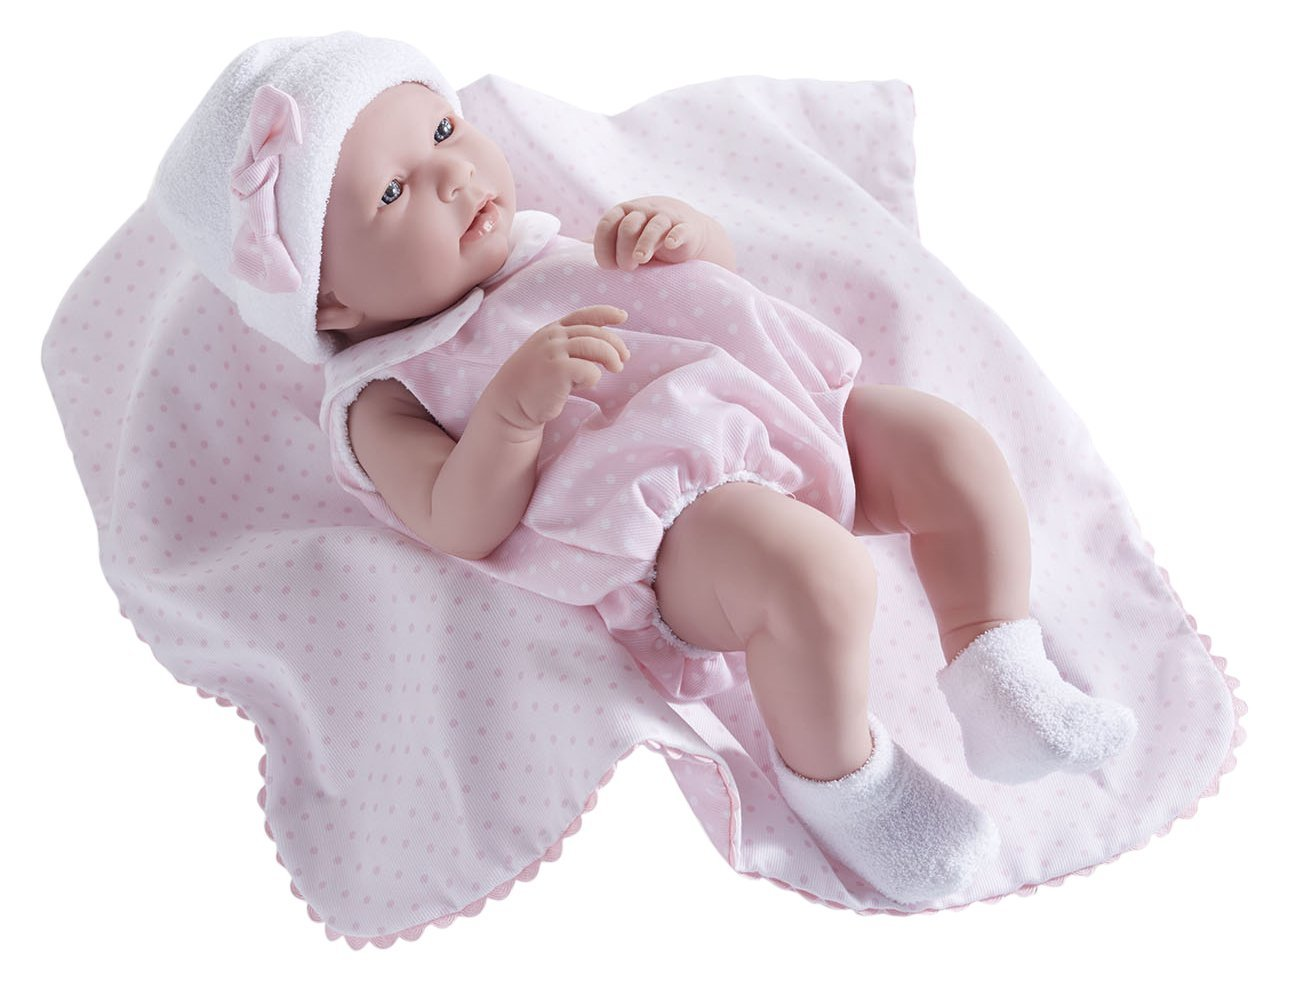 """Made in Spain JC Toys Group Inc JC Toys La Newborn 18108 All Vinyl in Blue Bubble Suit and Blanket Designed by Berenguer Boutique Realistic 17 Anatomically Correct /""""REAL BOY/"""" Baby Doll"""